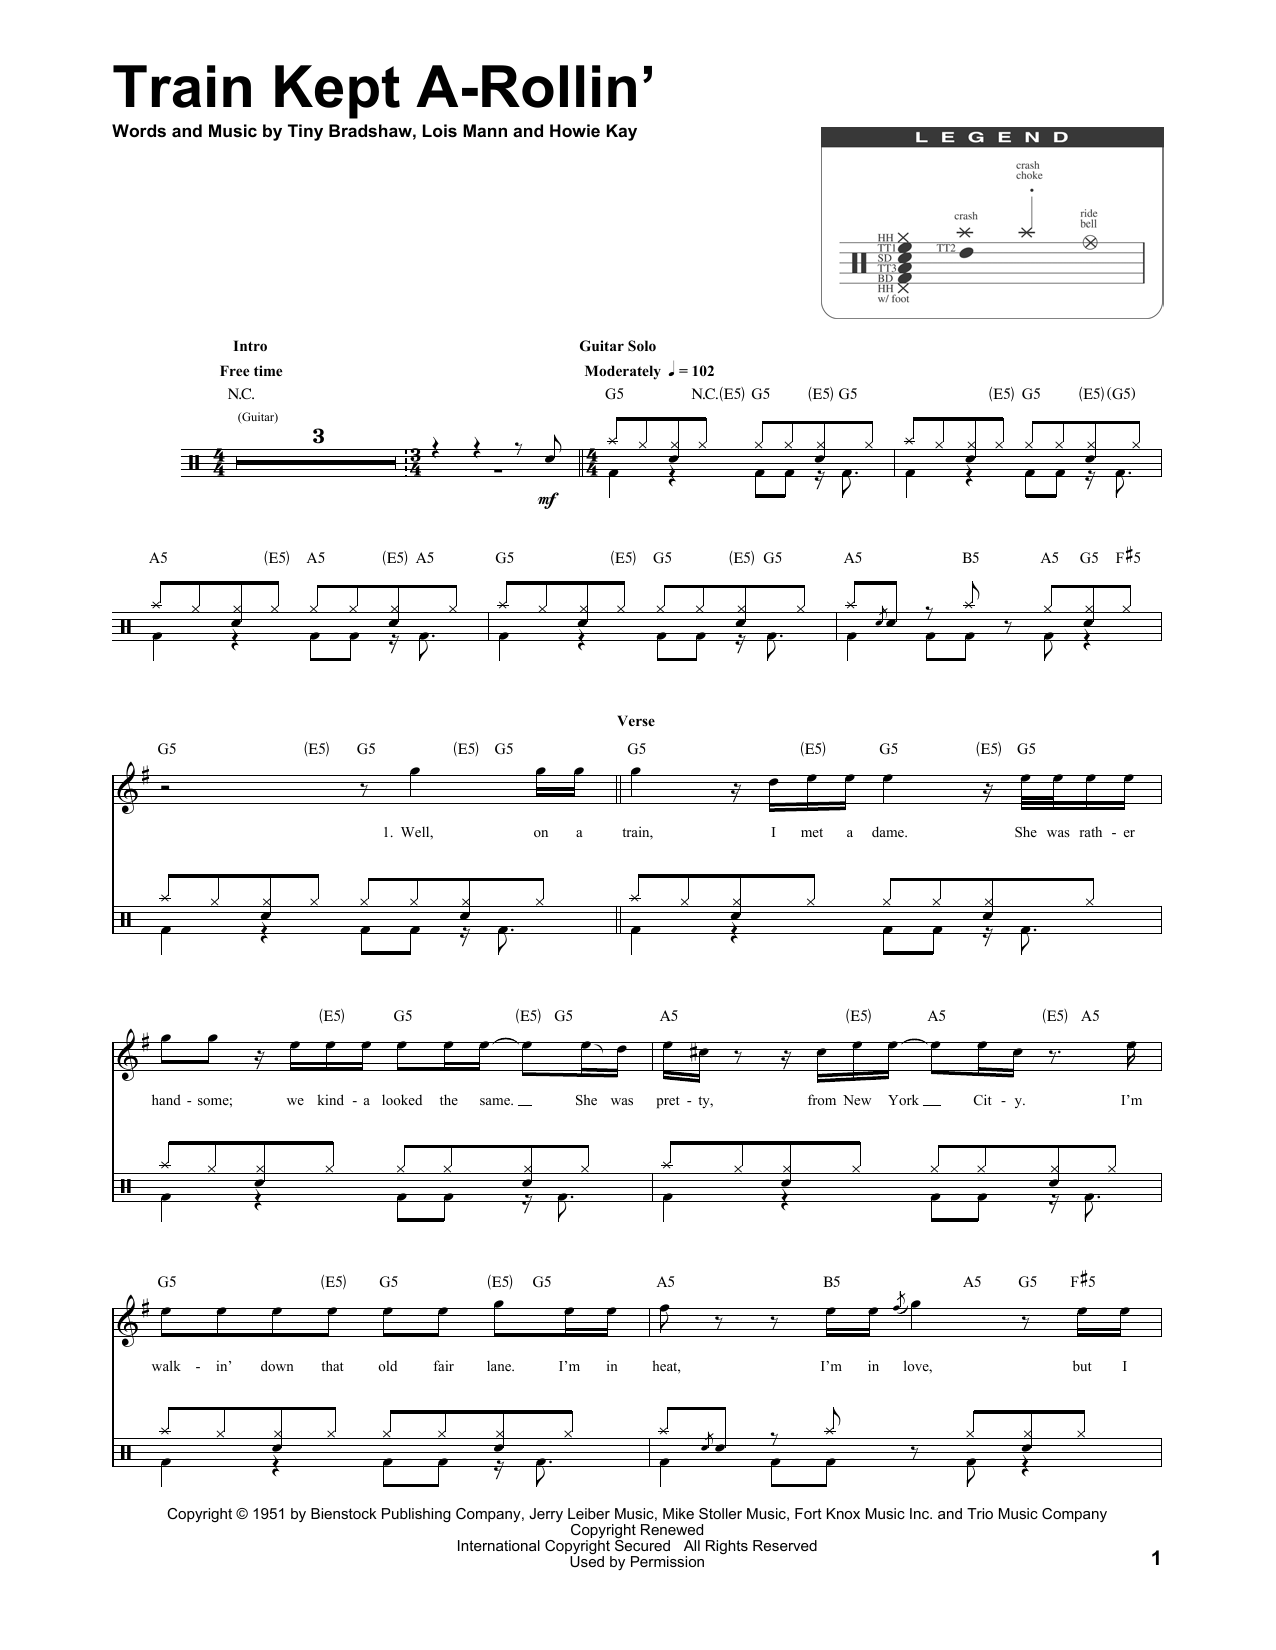 Train Kept A-Rollin' Sheet Music